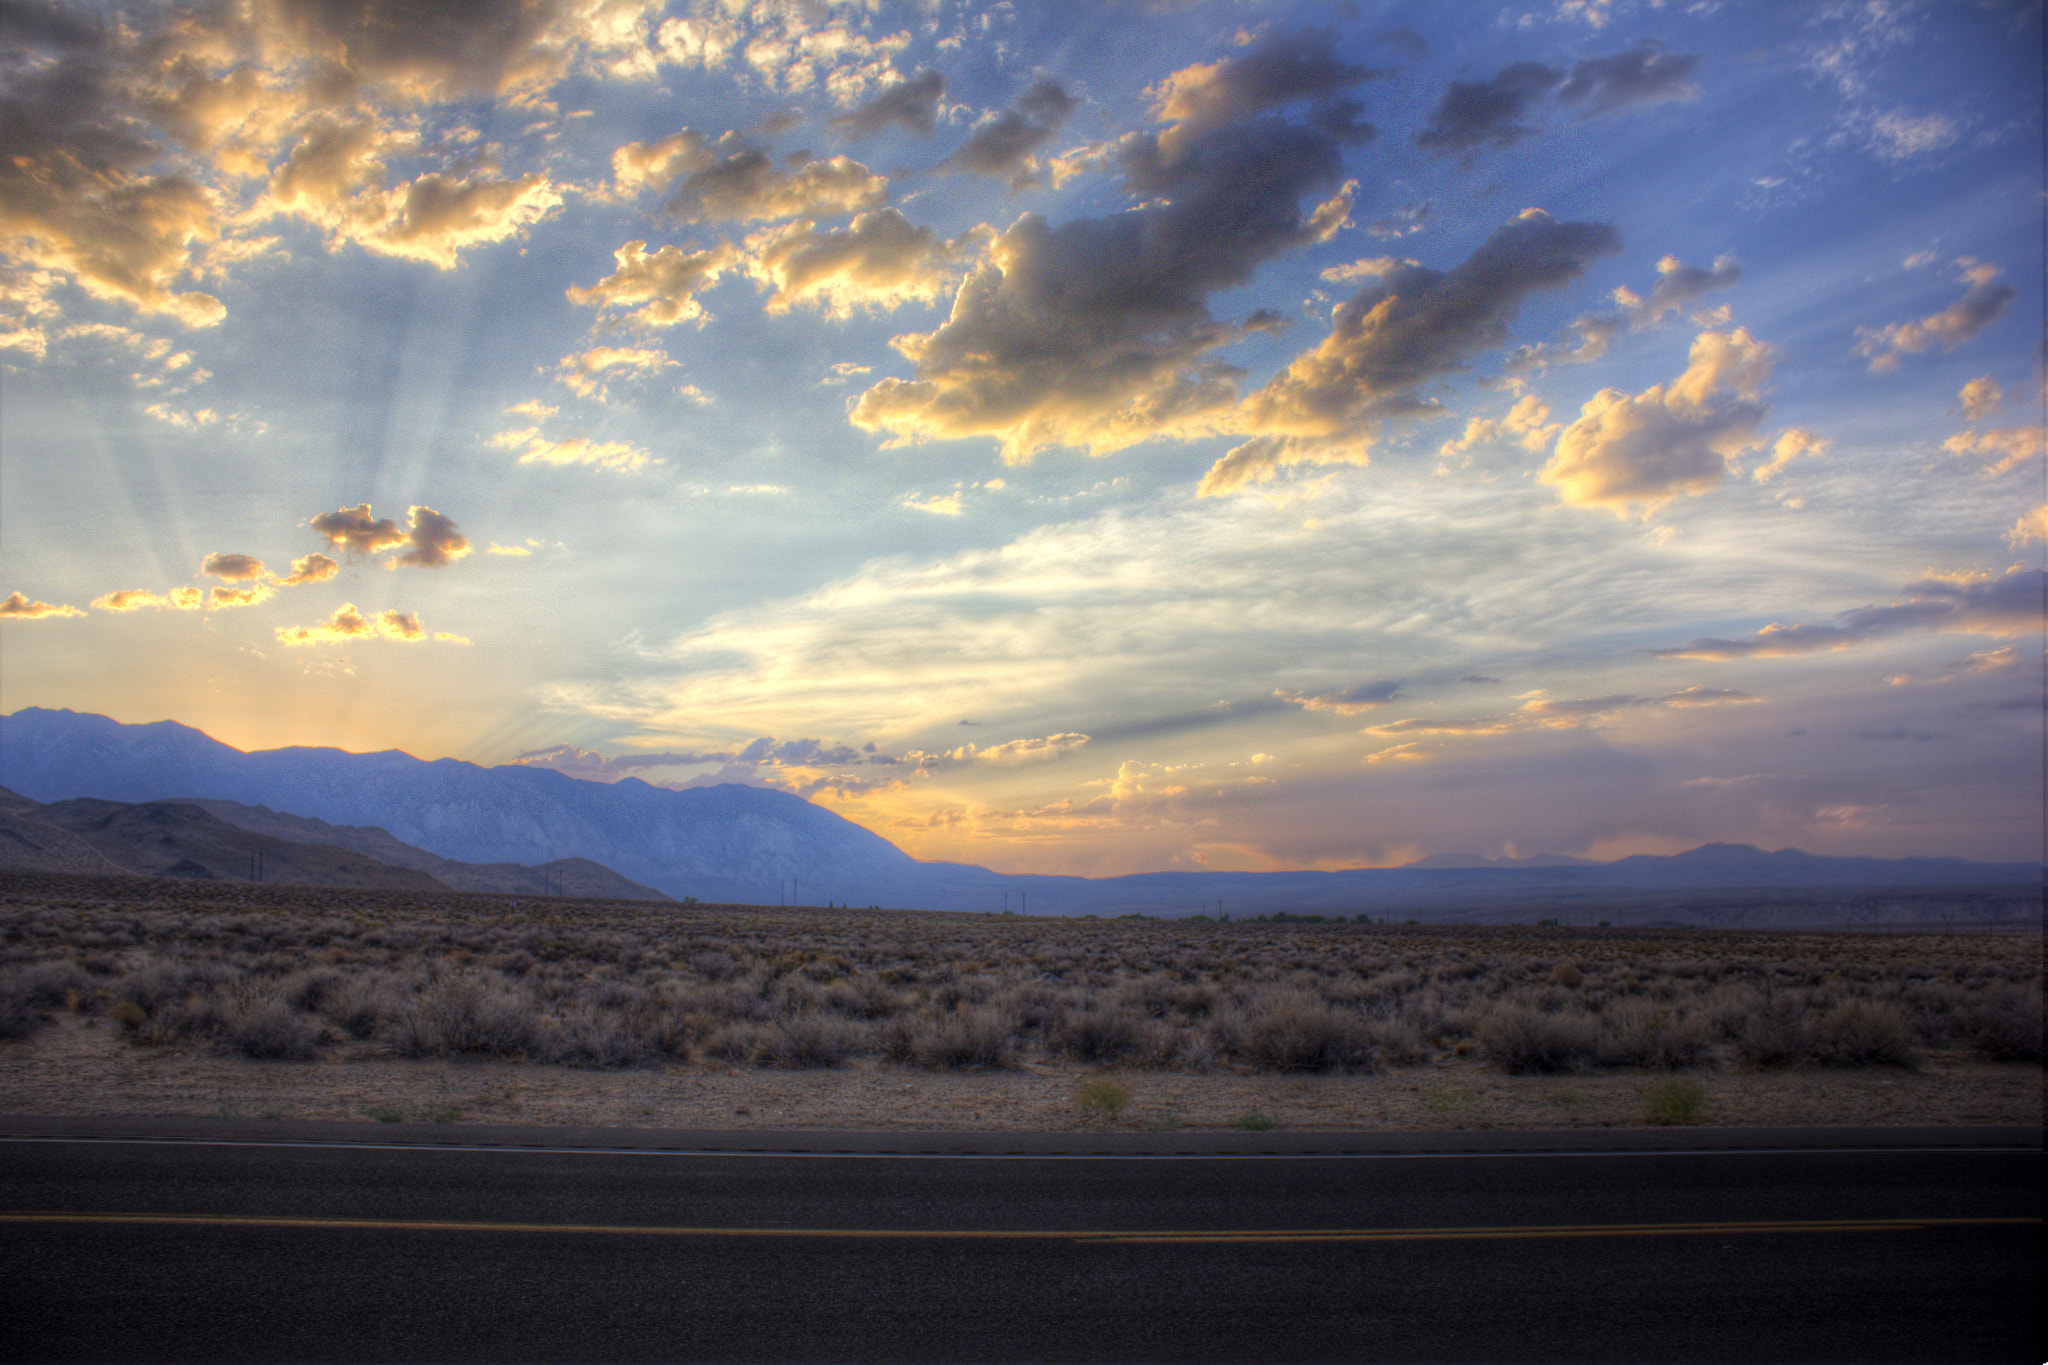 Photograph Sunset - 29th of June by Jacob Penderworth on 500px